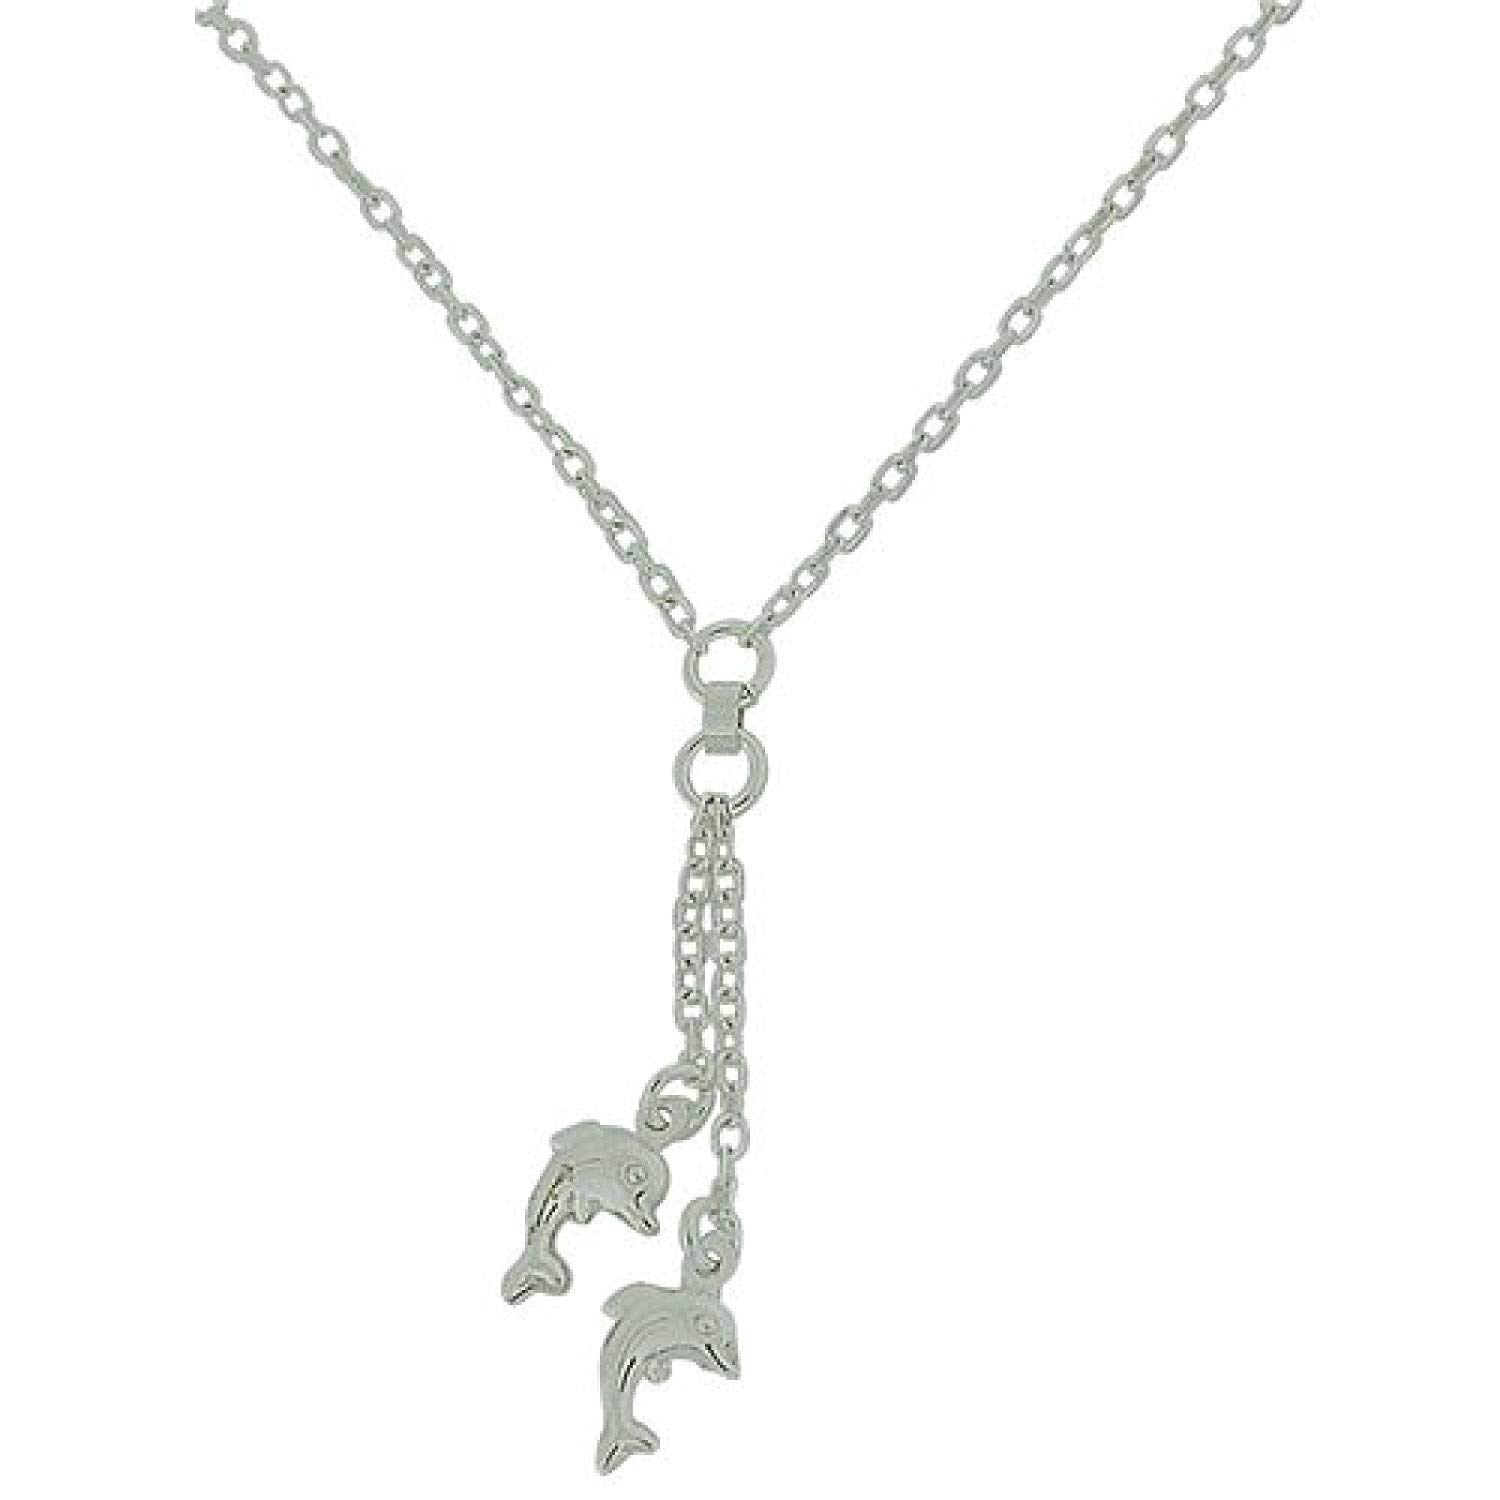 The Olivia Collection TOC 925 Sterling Silver 16 Inch Necklace with Double Dolphin Drop Pendant